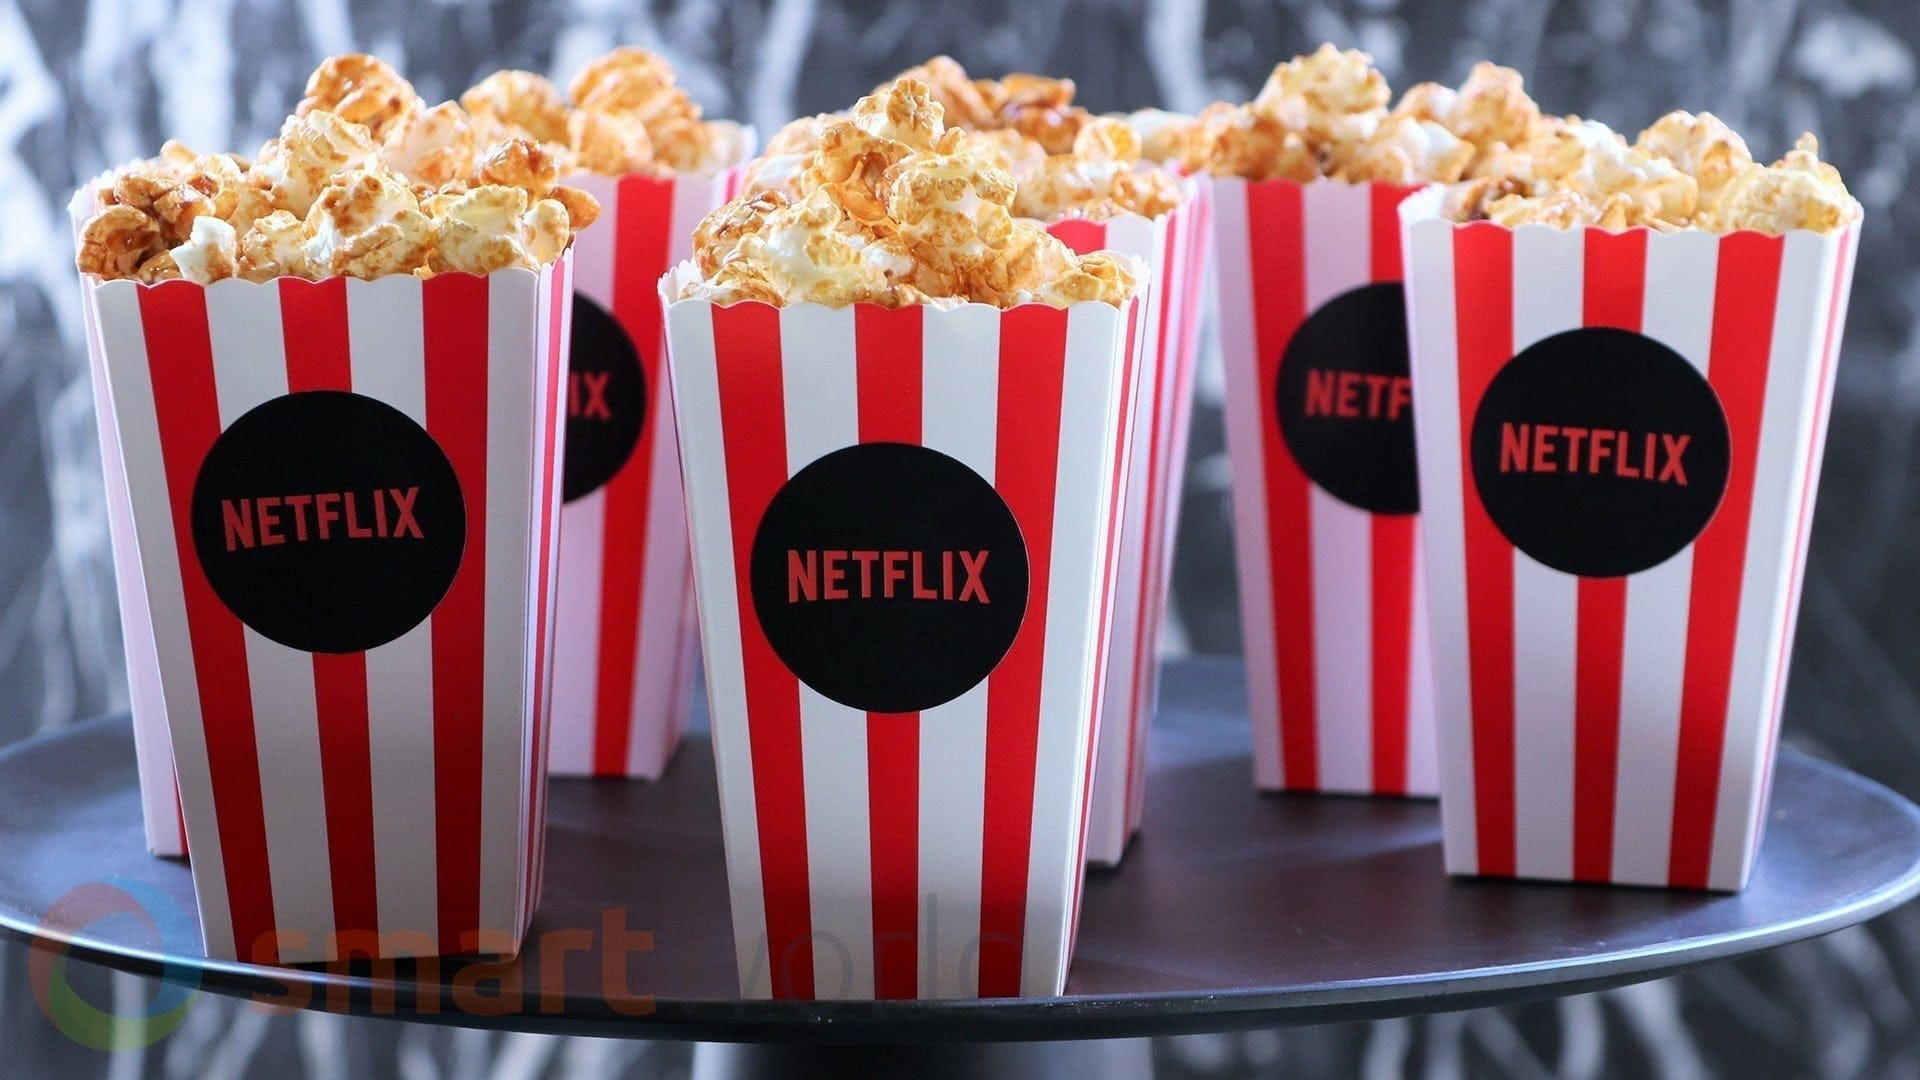 Netflix is considering a new premium service that works behind the scenes and podcasts